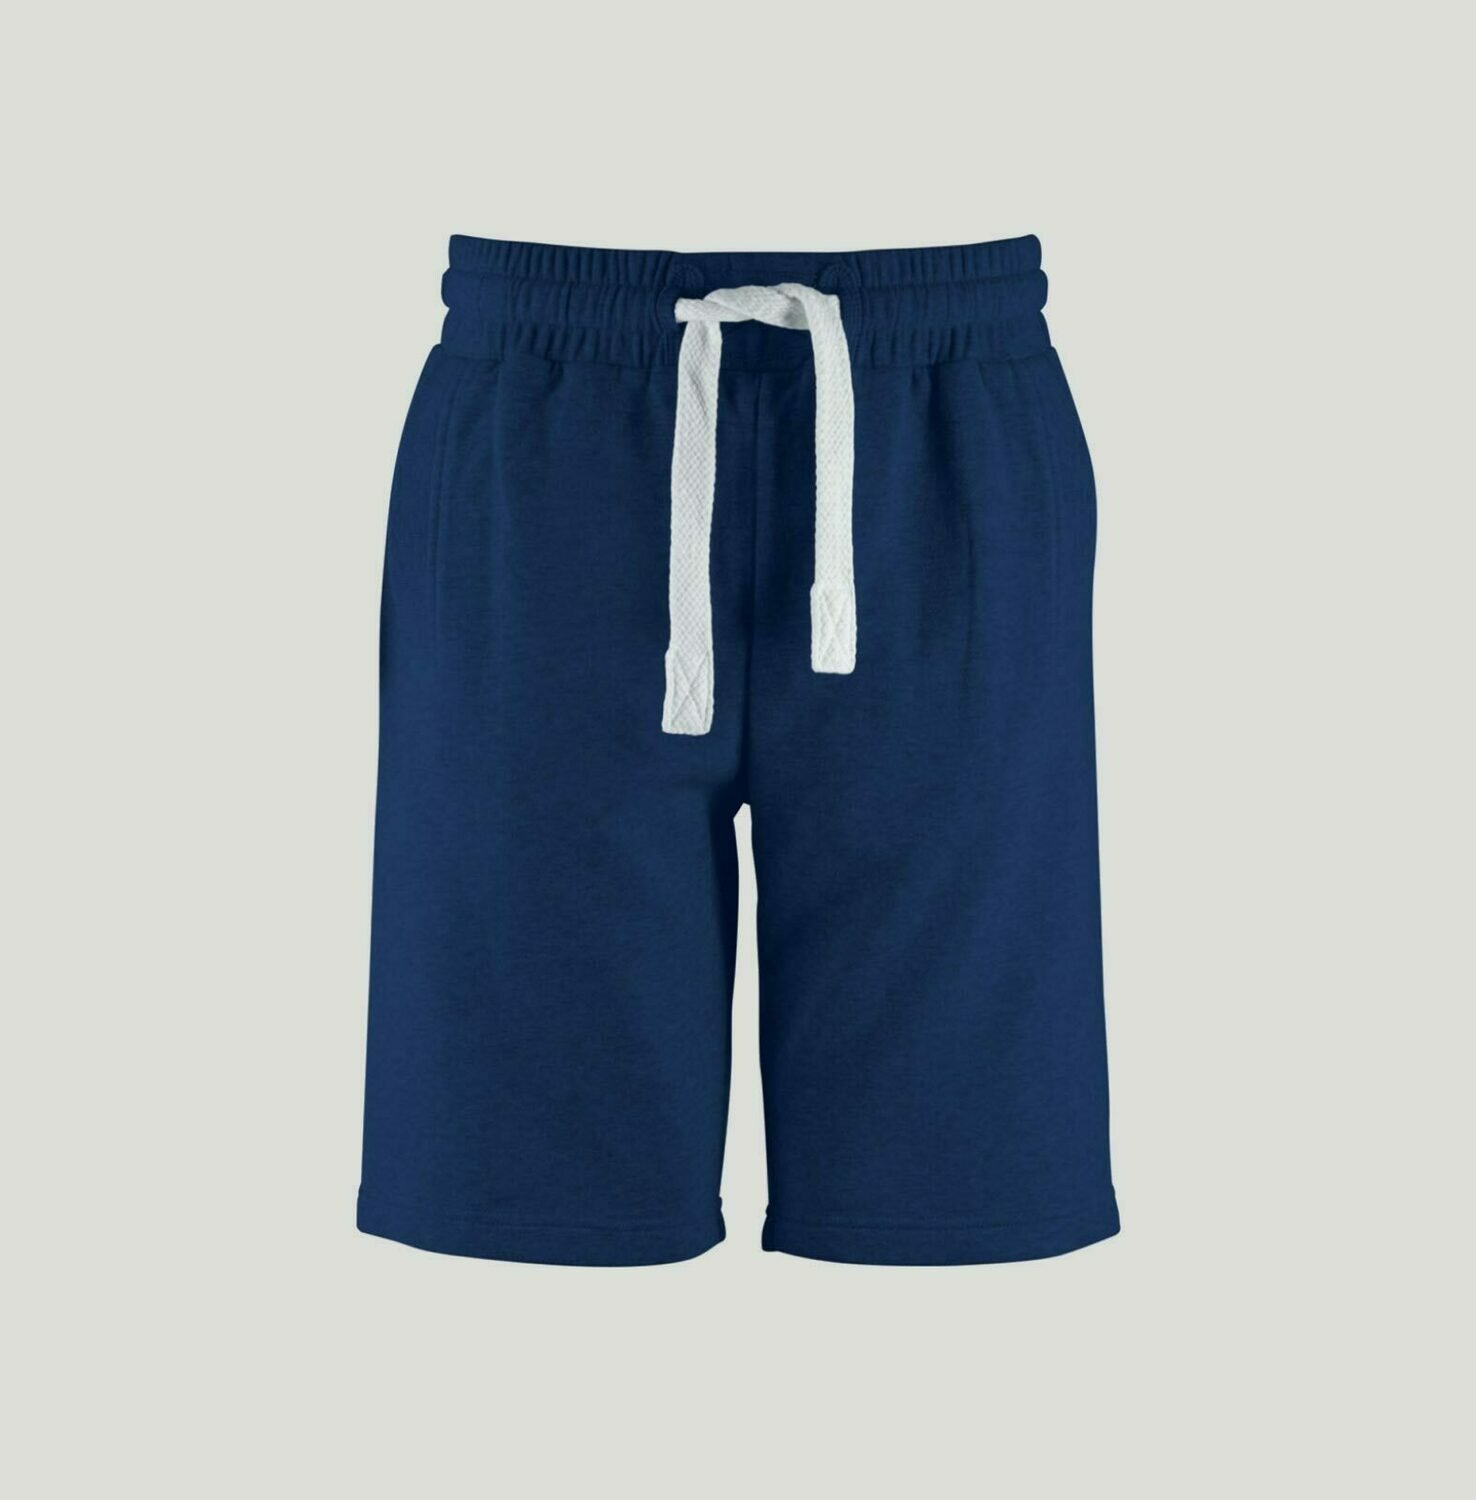 Switcher Bermuda Shorts CRUZ Herren